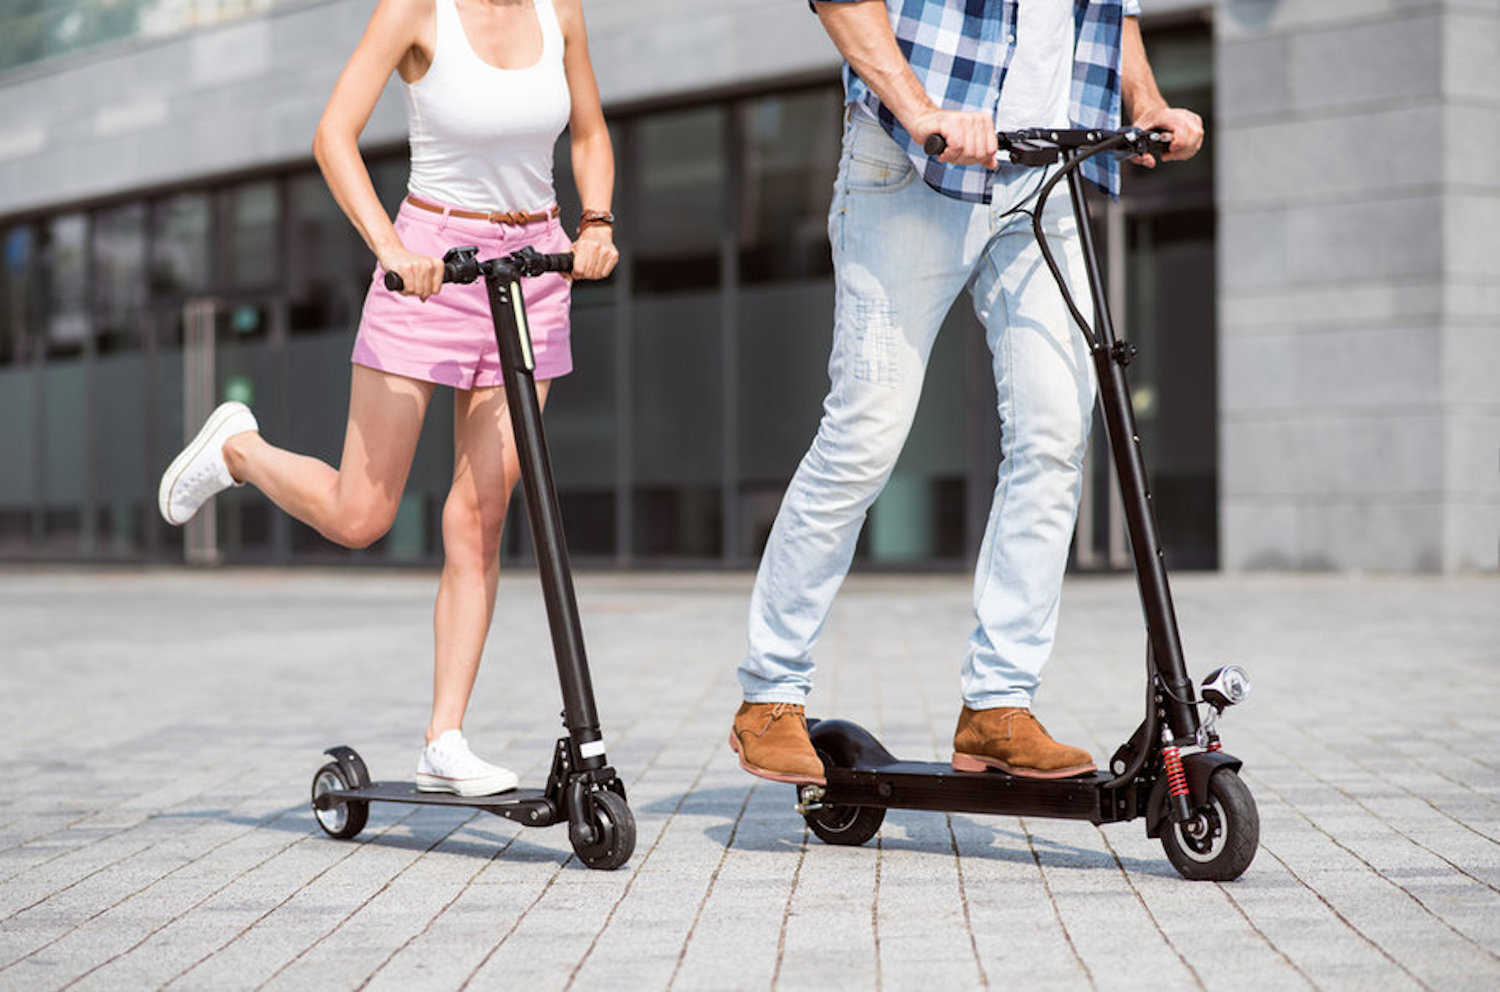 A man and a woman ride electric scooters on a pavement